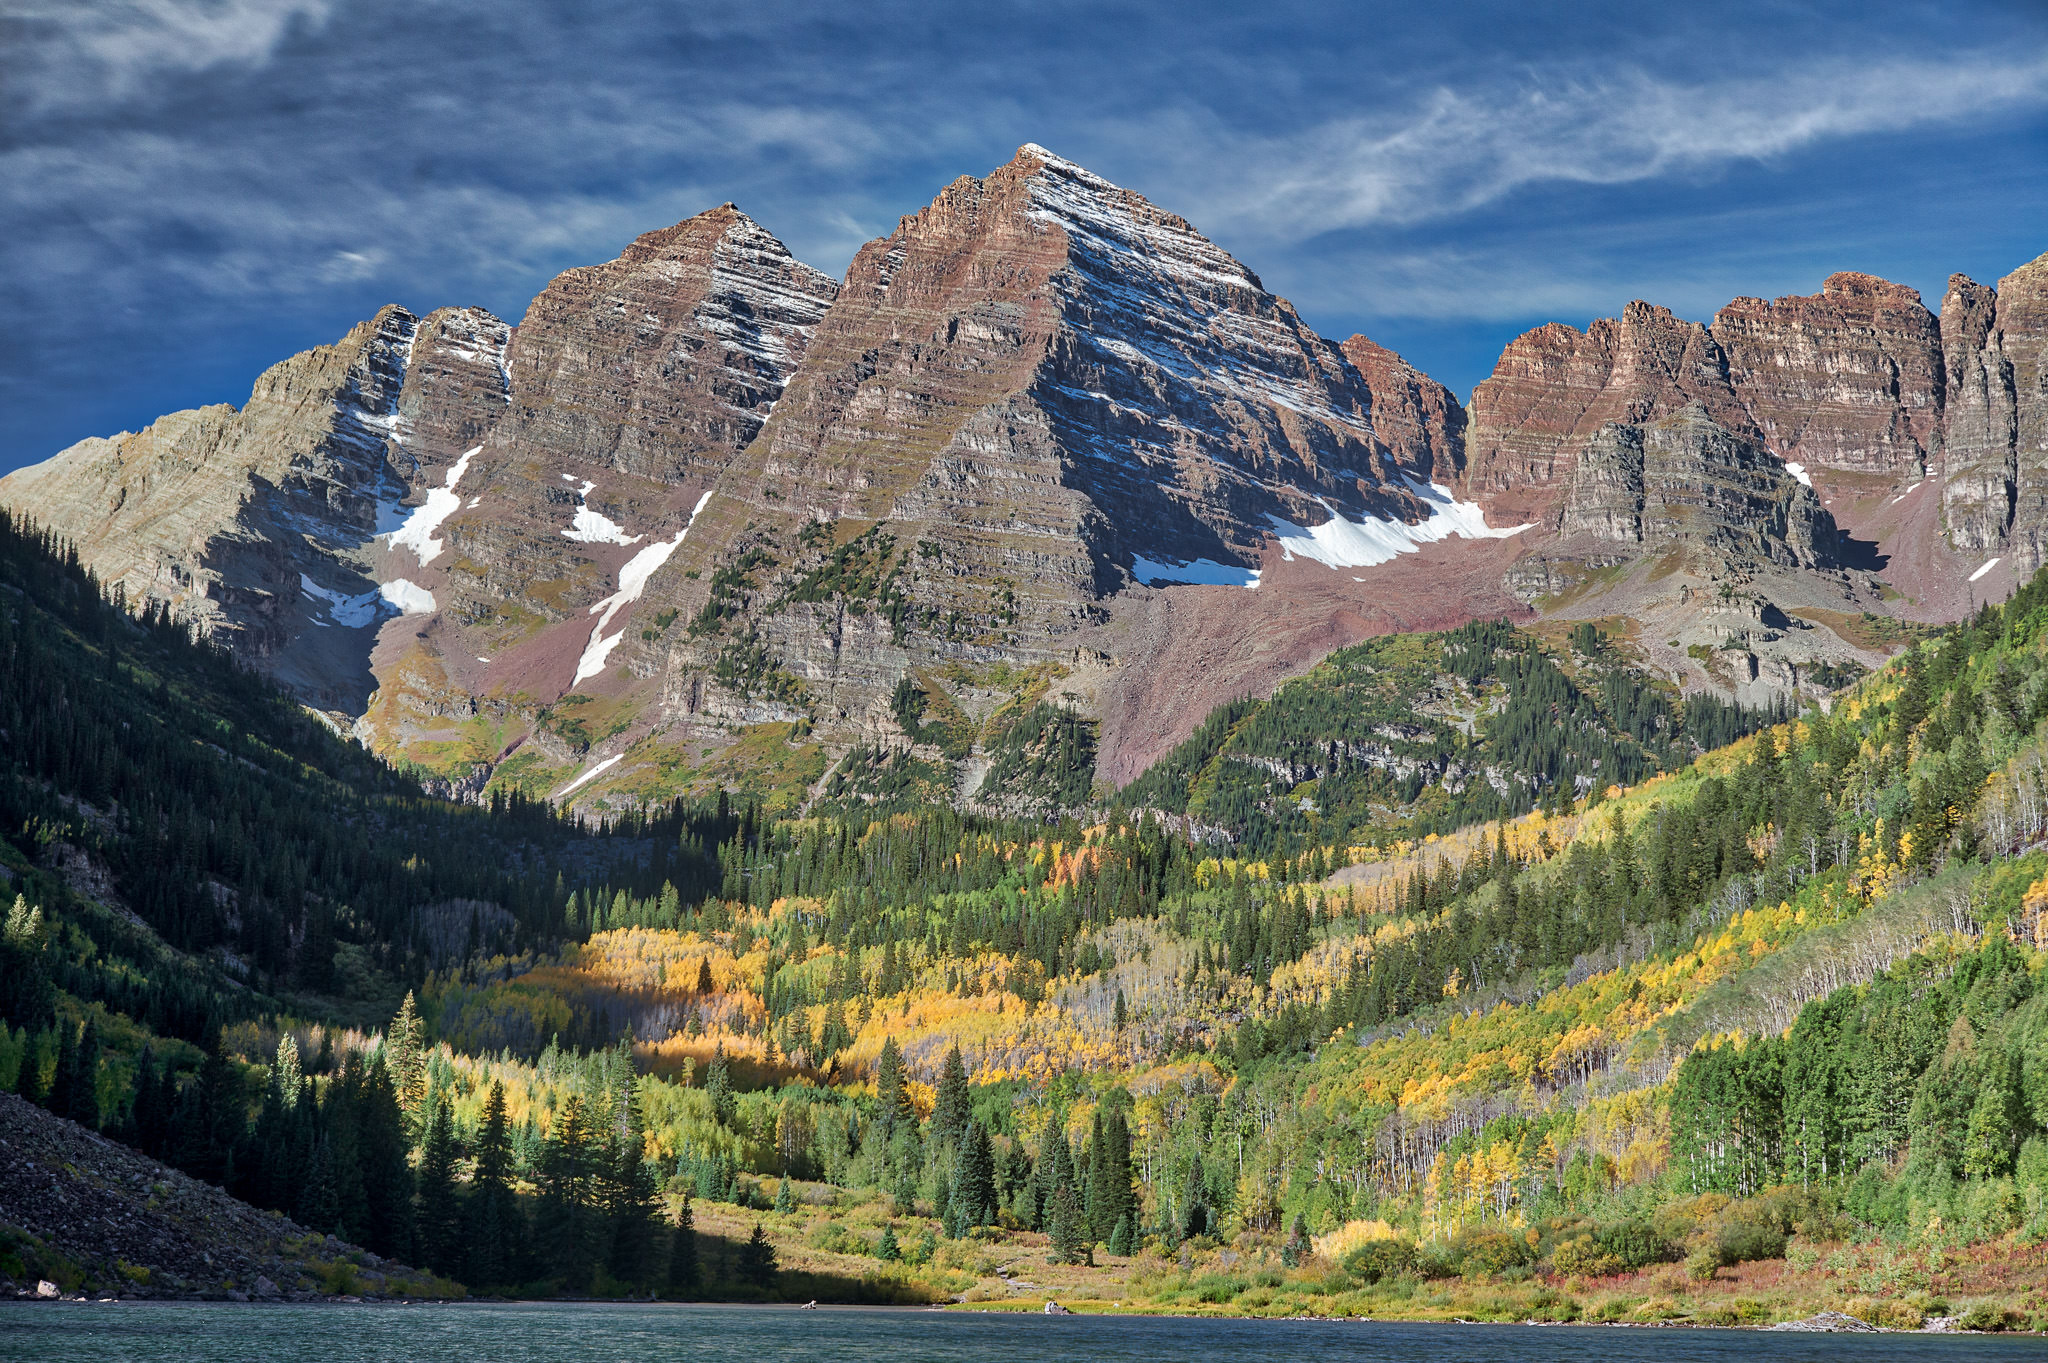 2017 Favorites: Maroon Bells